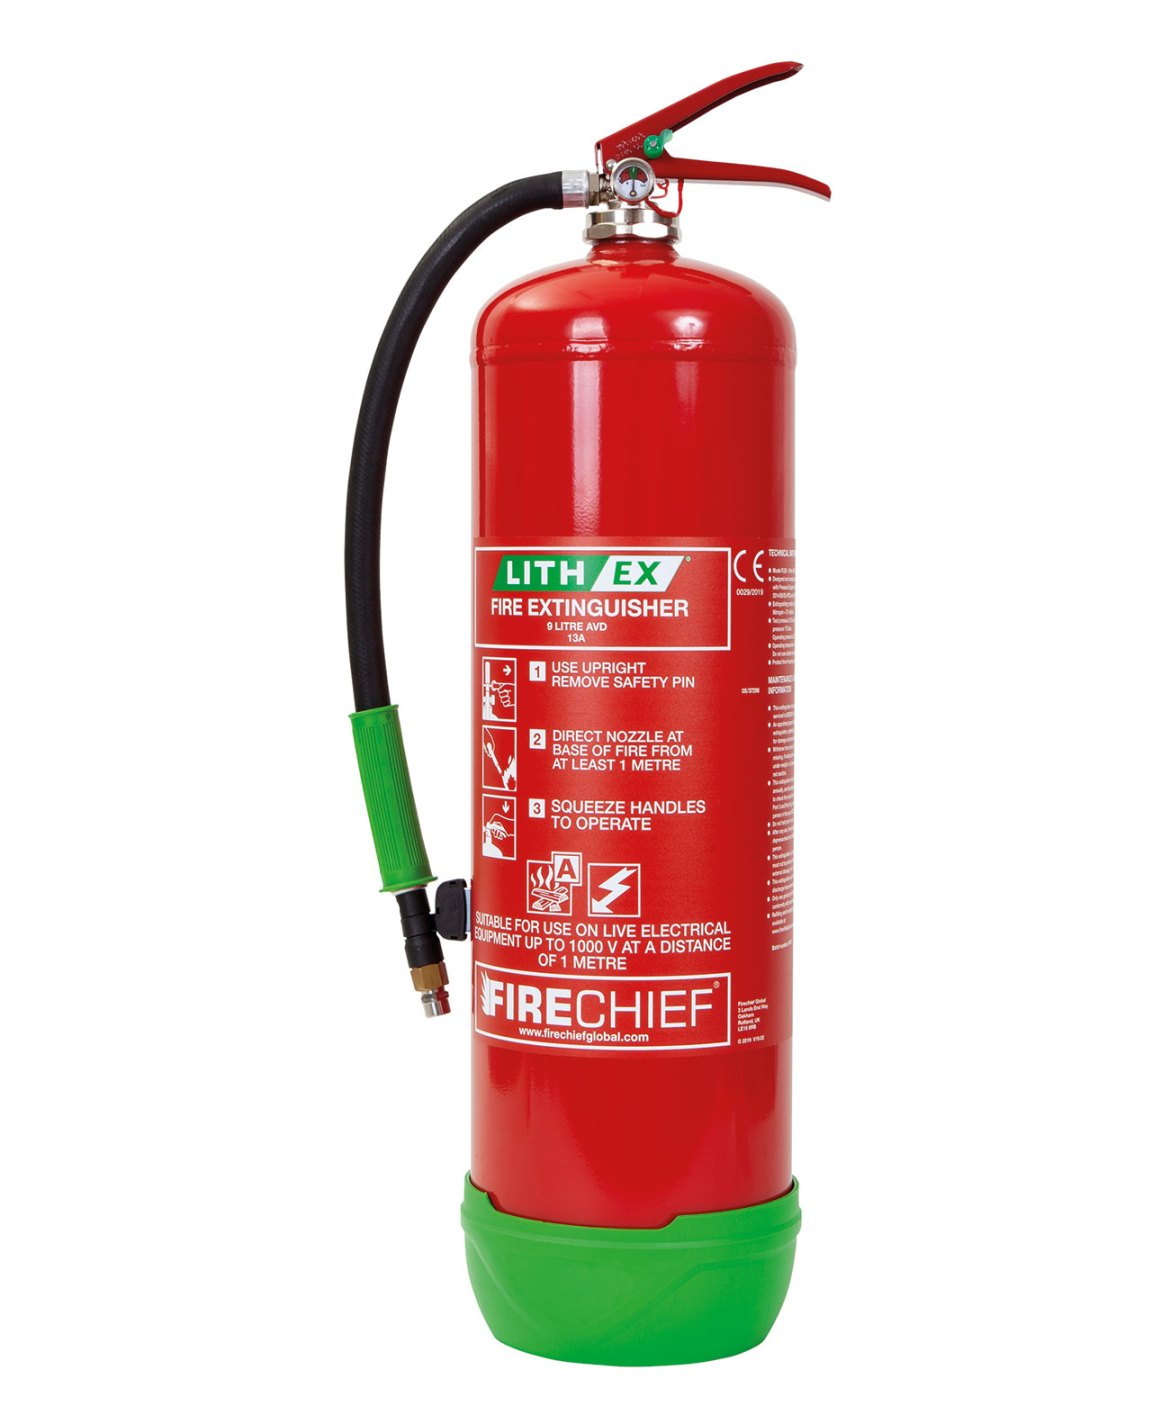 Lithium battery fire extinguishers have capacities up to 9 litres to help tackle some of the larger fires that occur in waste management facilities.